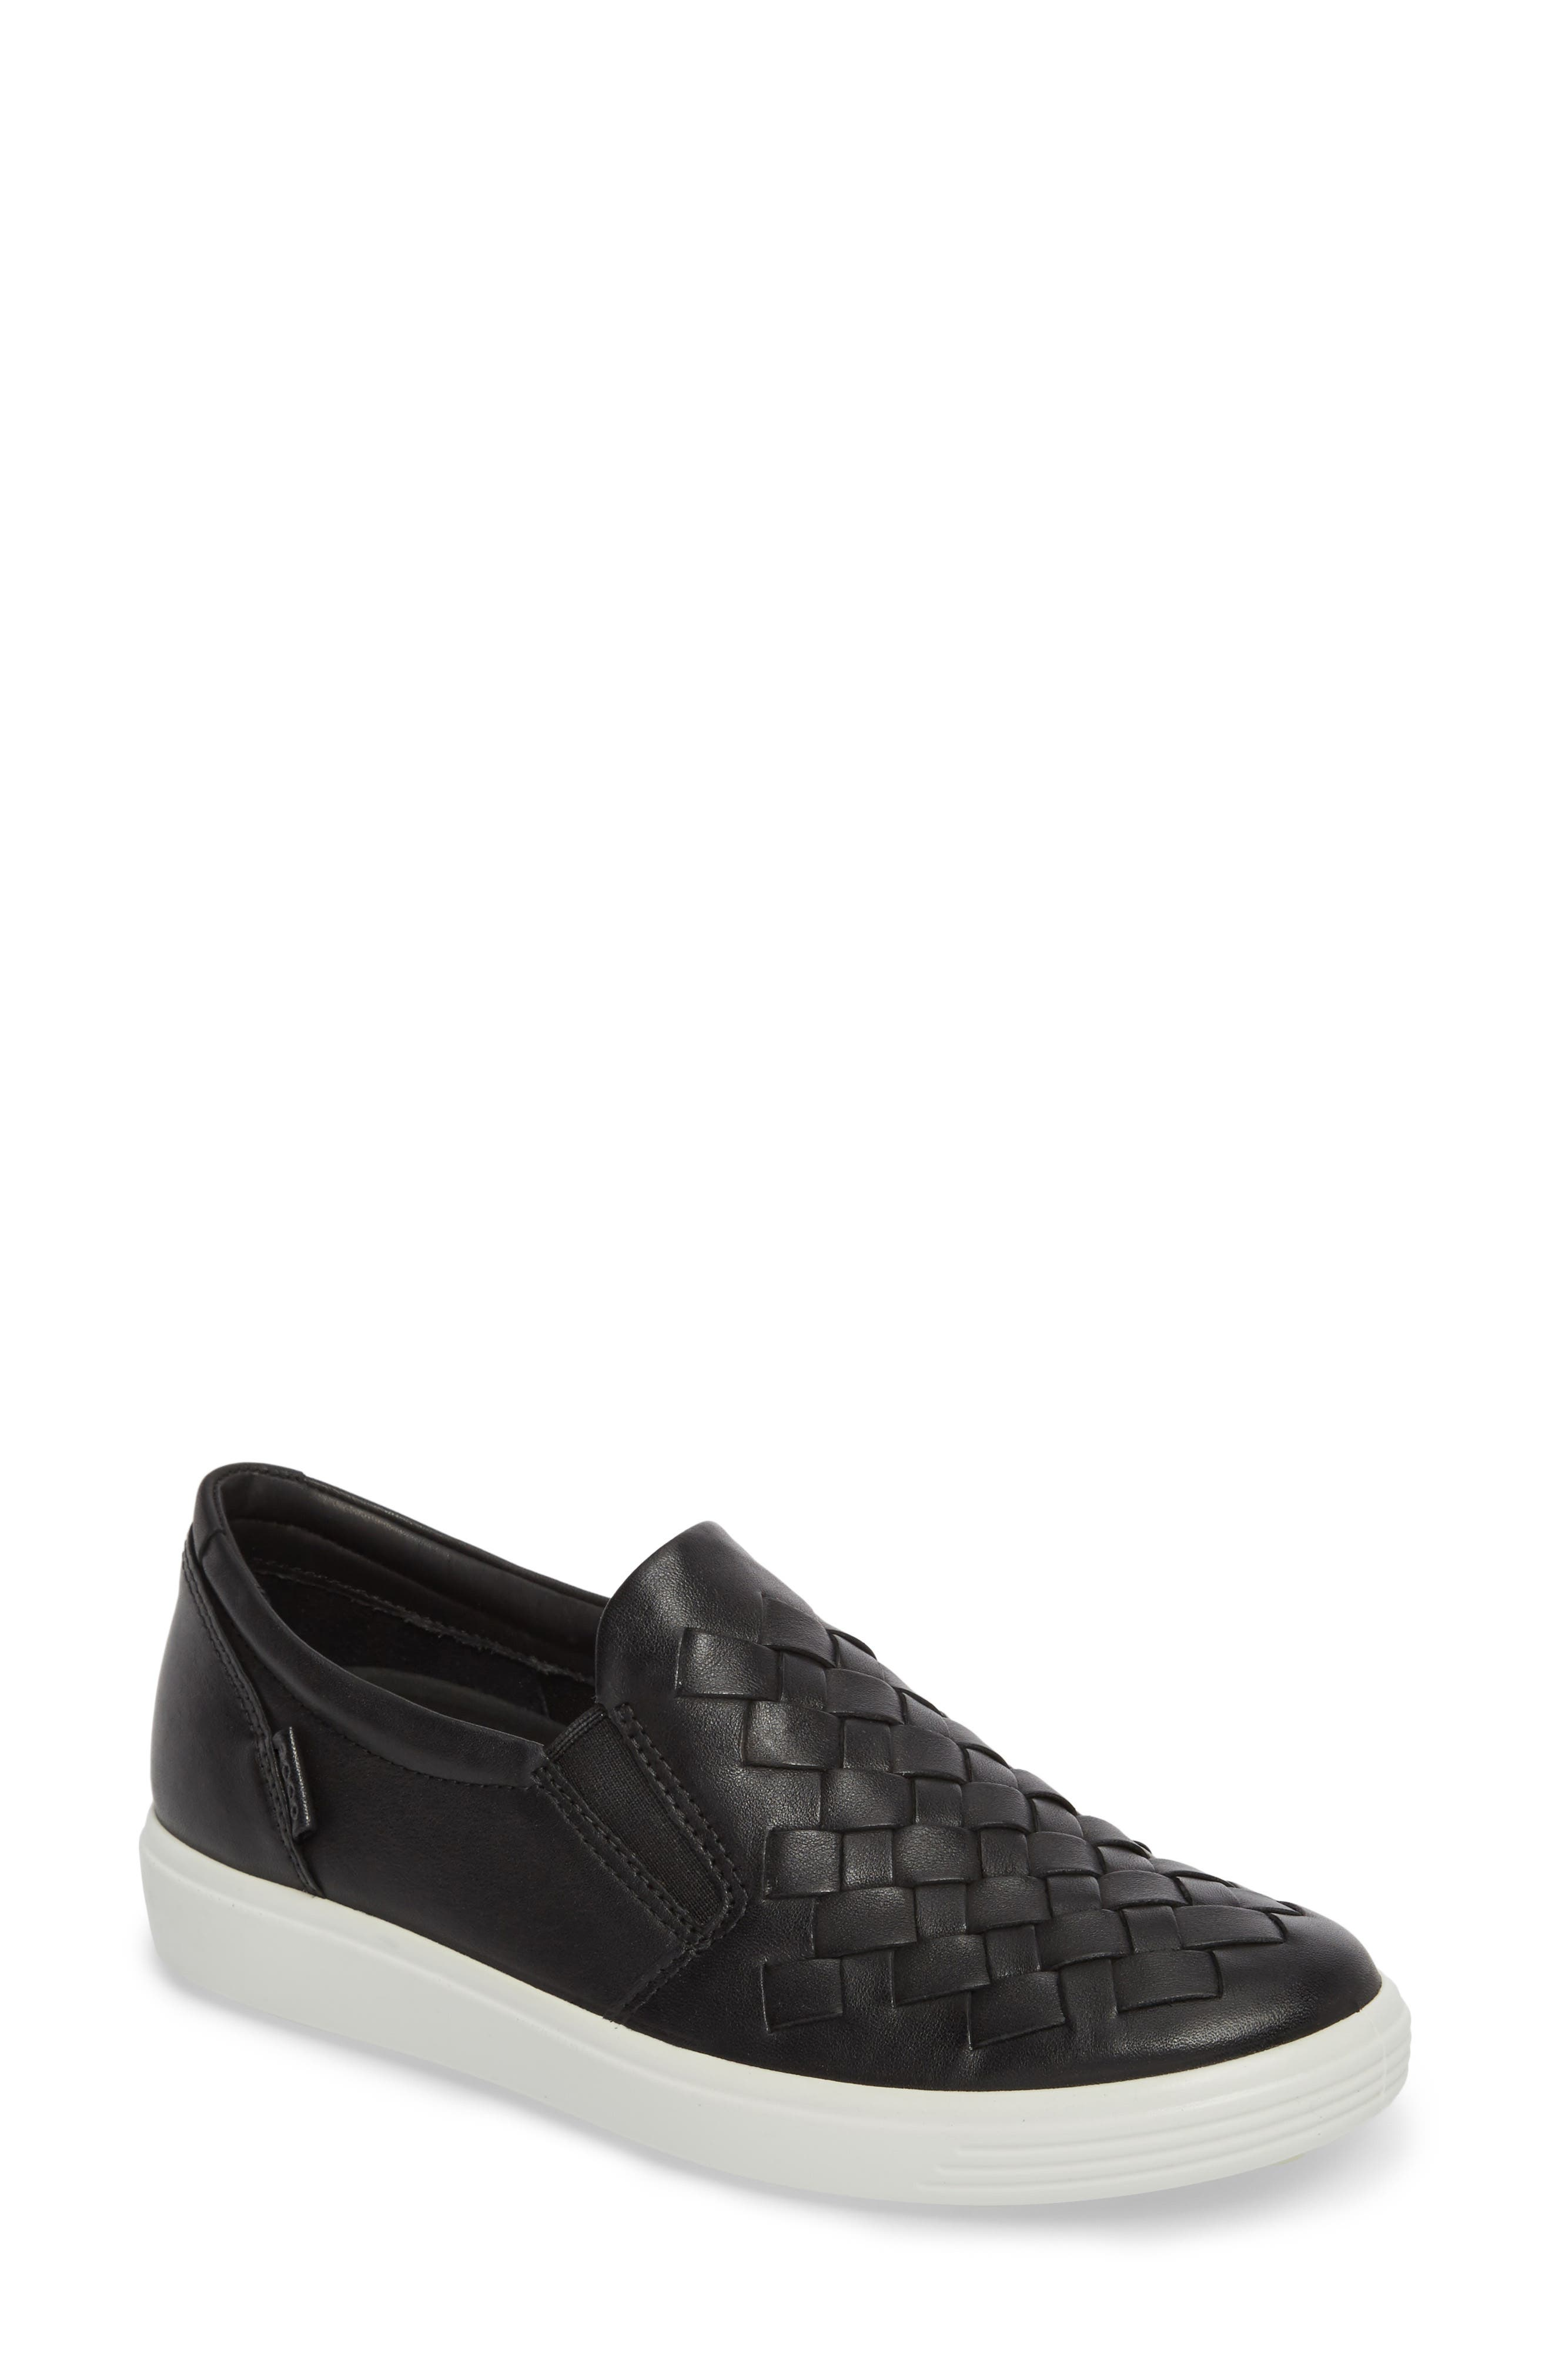 ECO Soft 7 Woven Slip-On Sneaker,                         Main,                         color, BLACK LEATHER